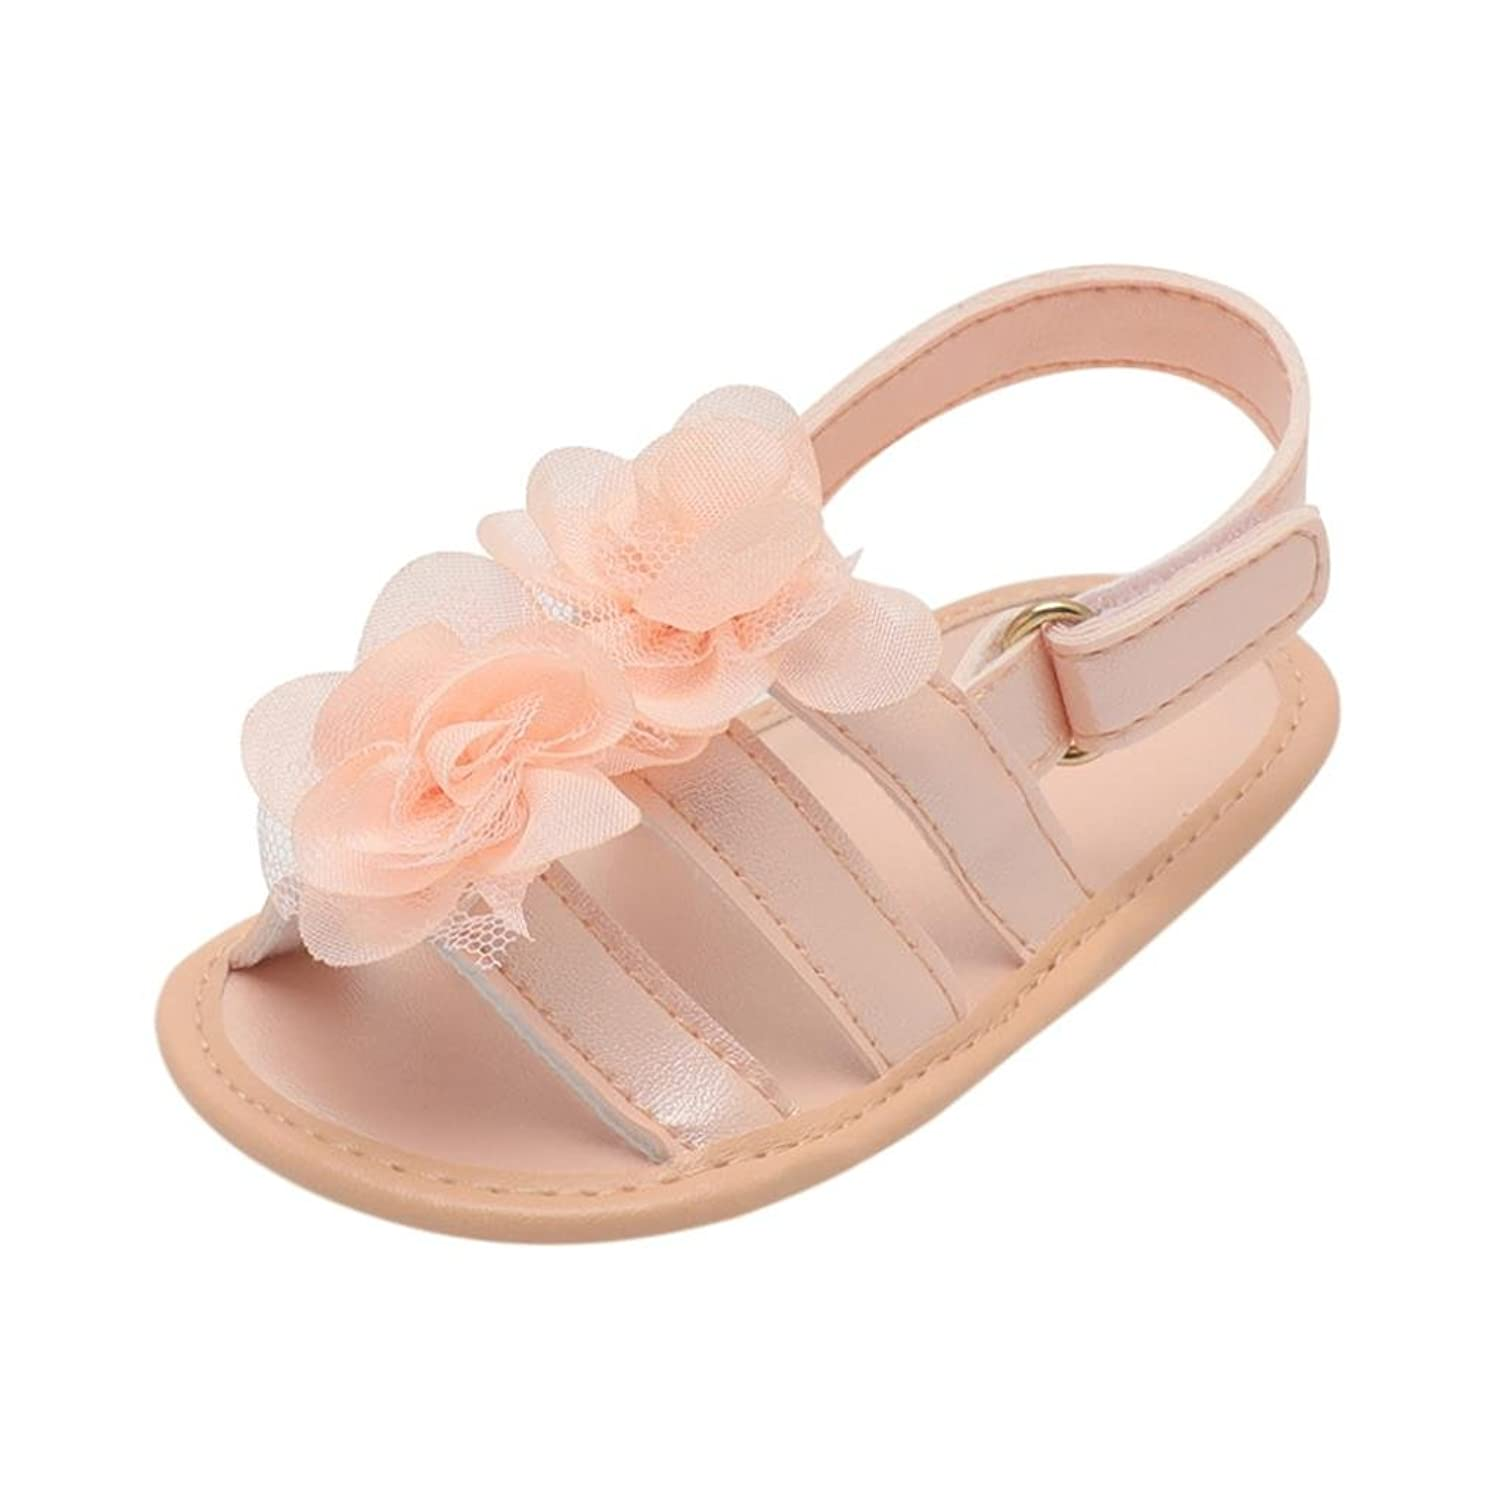 Childreninfant Kids Baby Girls Cute Weaving Dance Princess Sandals Shoes Luxury Brand Style Girls Casual Sandals Summer #3 Pearl